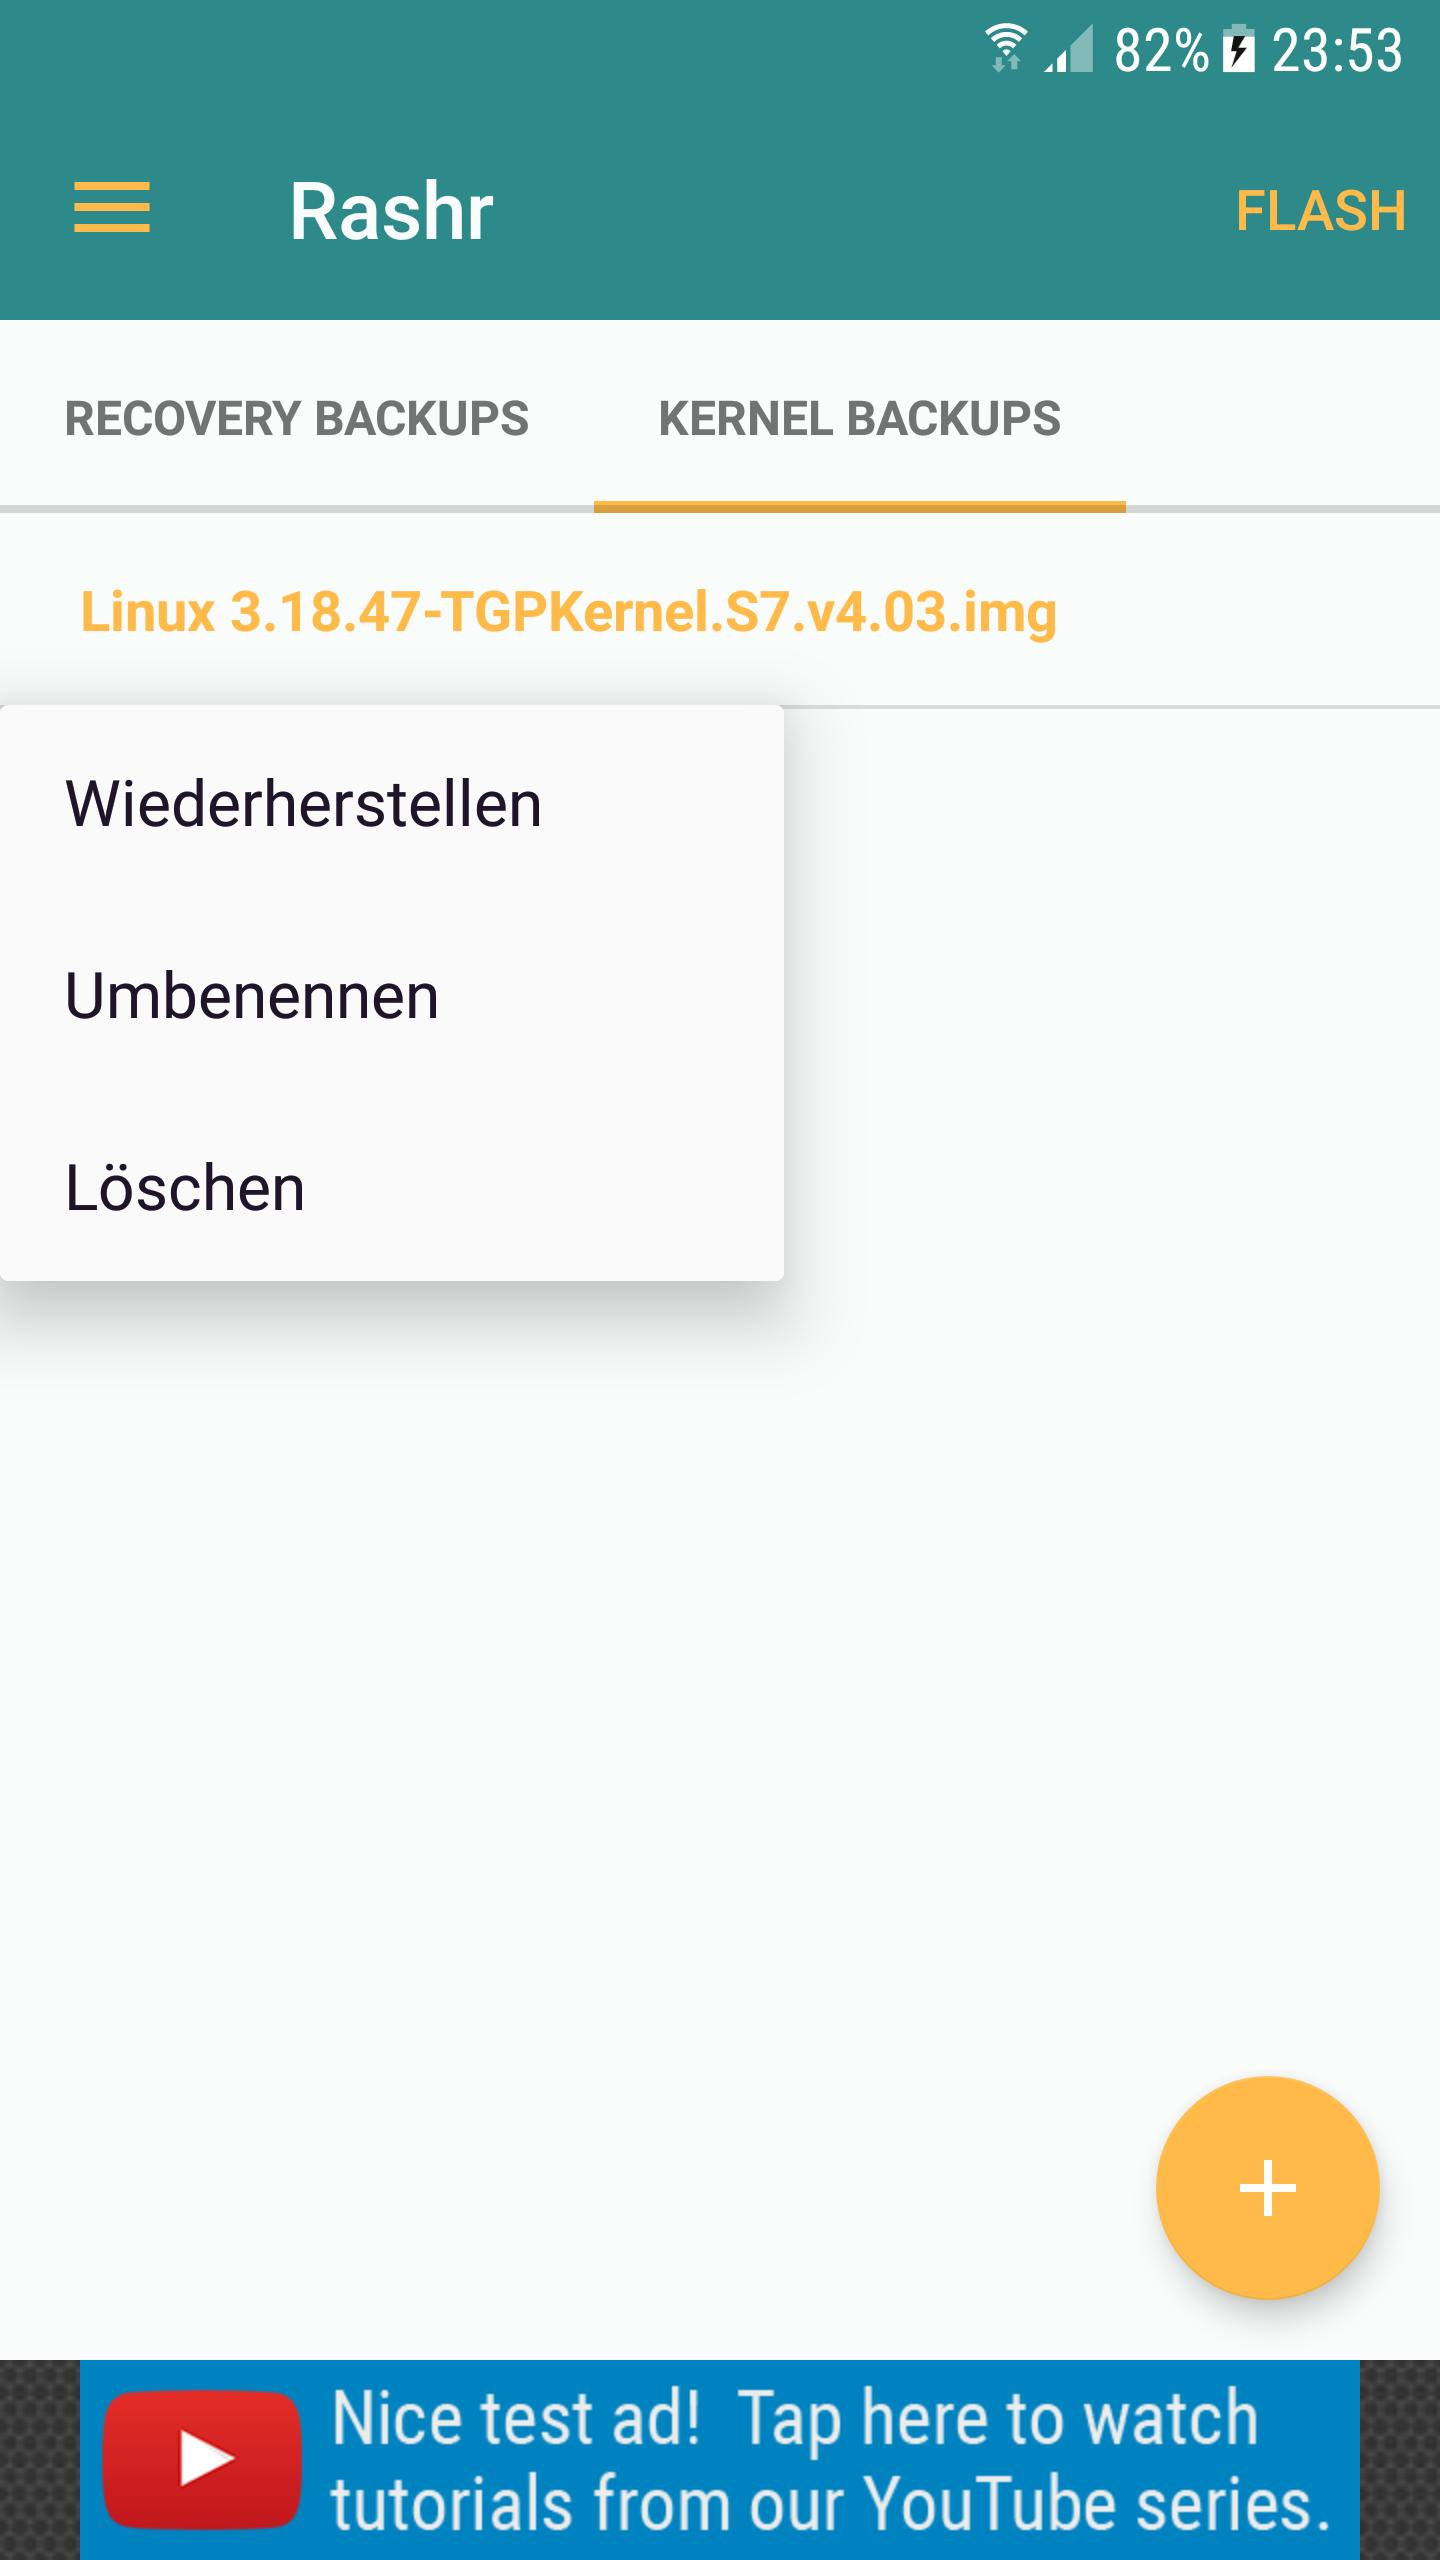 ROOT] Rashr - Flash Tool for Android - APK Download